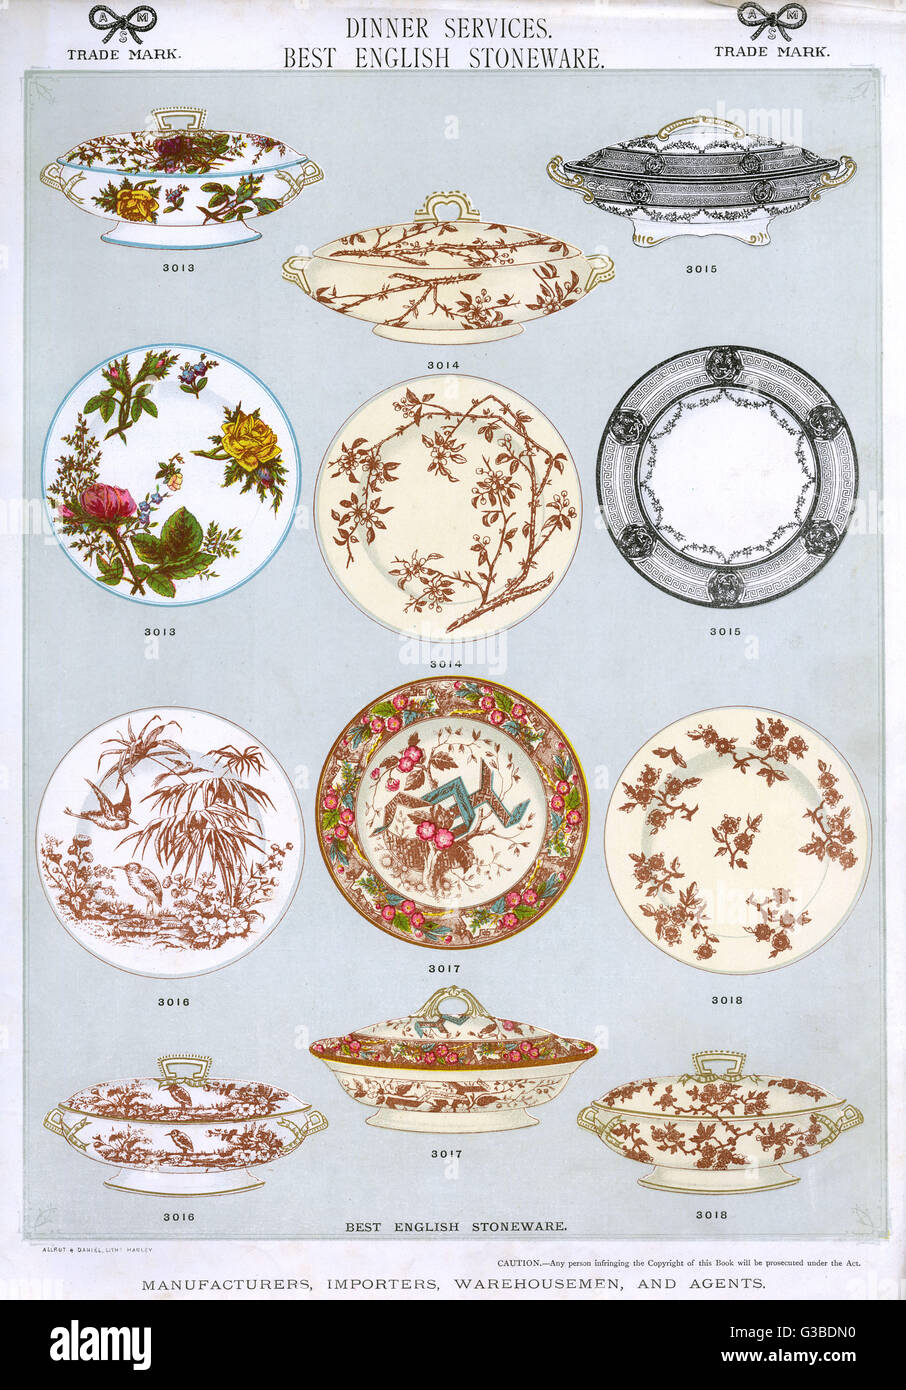 Dinner Services Best English Stoneware Plate 3 showing patterned plates and covered serving dishes. Date circa 1880s  sc 1 st  Alamy & Dinner Services Best English Stoneware Plate 3 showing patterned ...